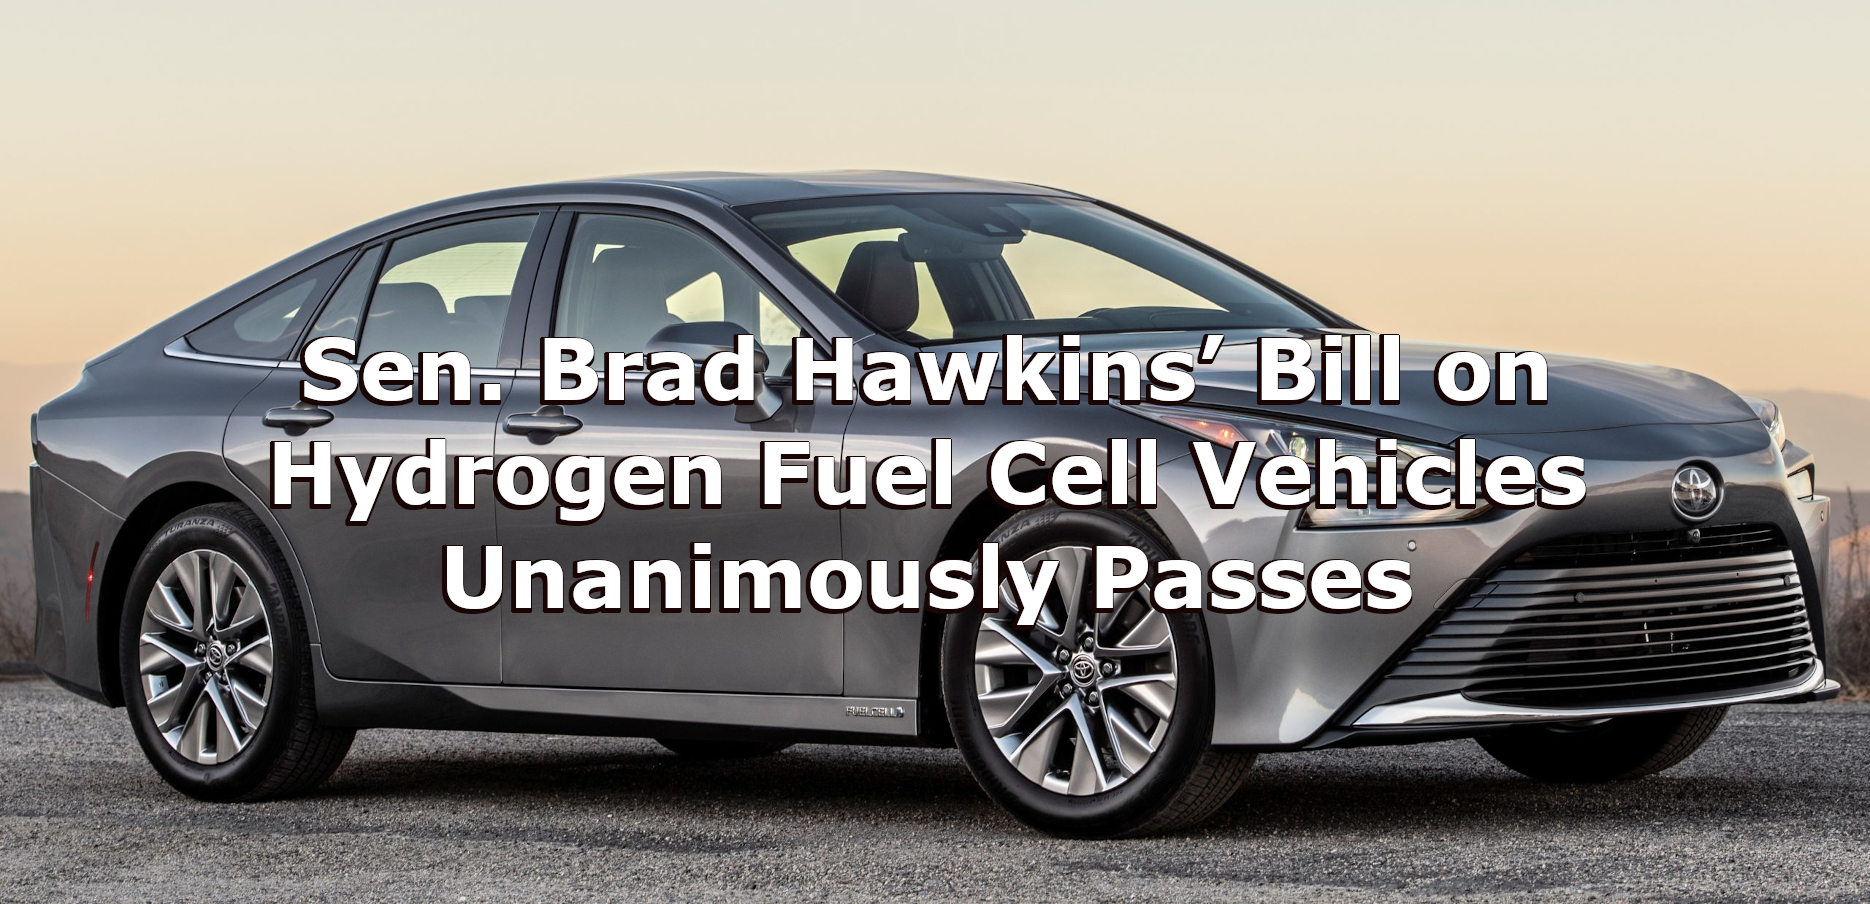 Sen. Brad Hawkins' Bill on Hydrogen Fuel Cell Vehicles Unanimously Passes